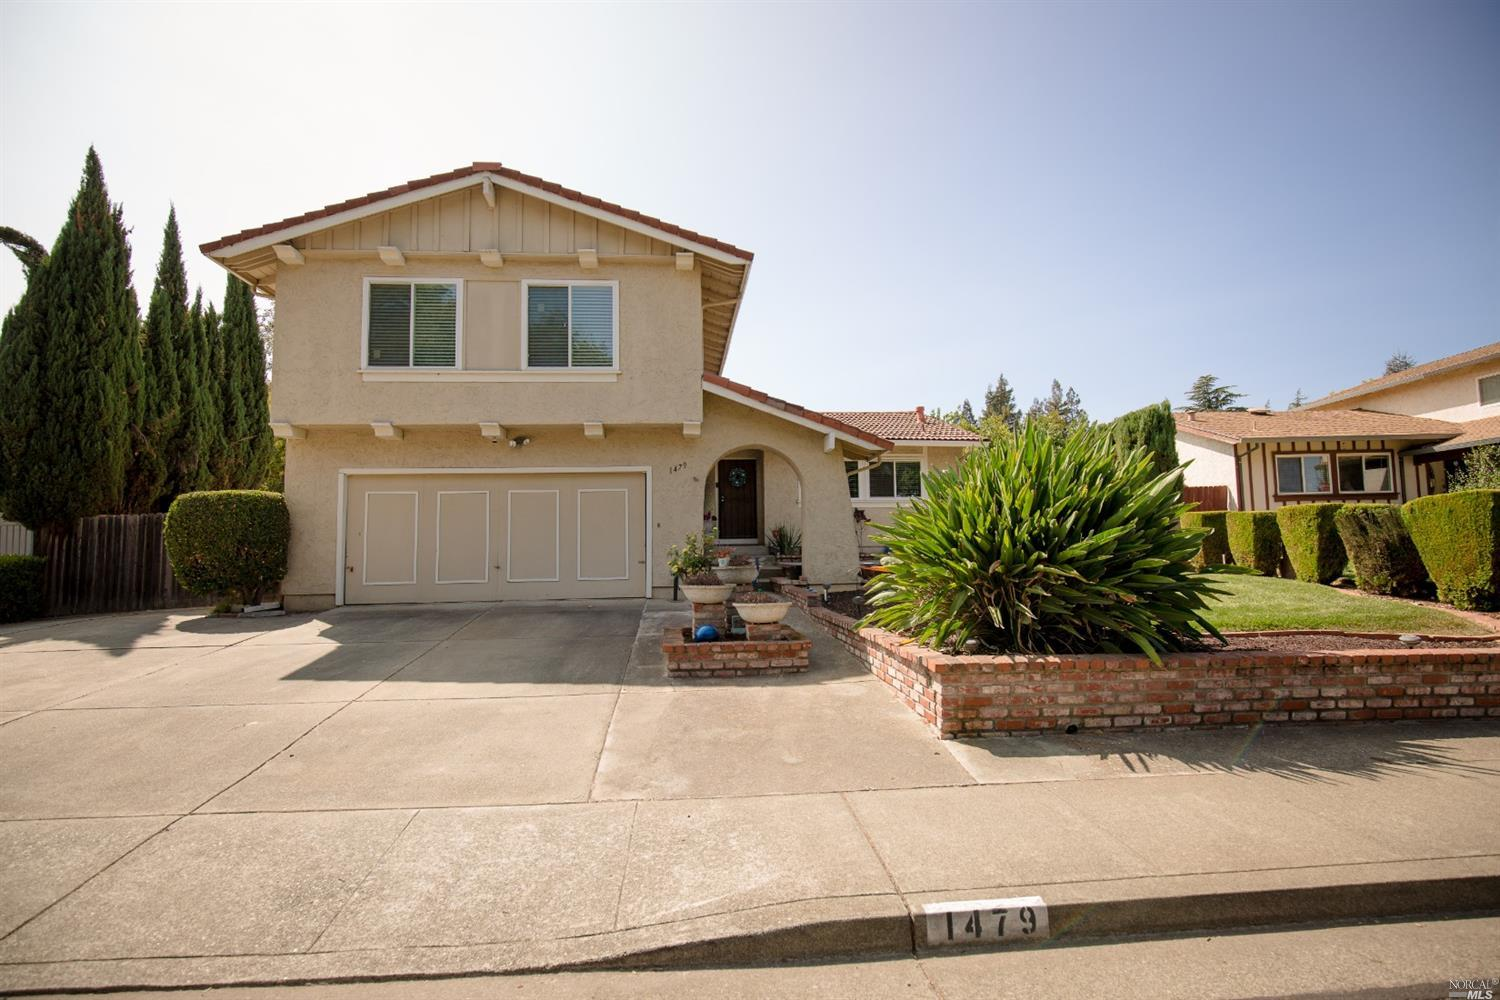 Well maintained home across from Woodcreek Park which is conveniently close to shopping and freeway